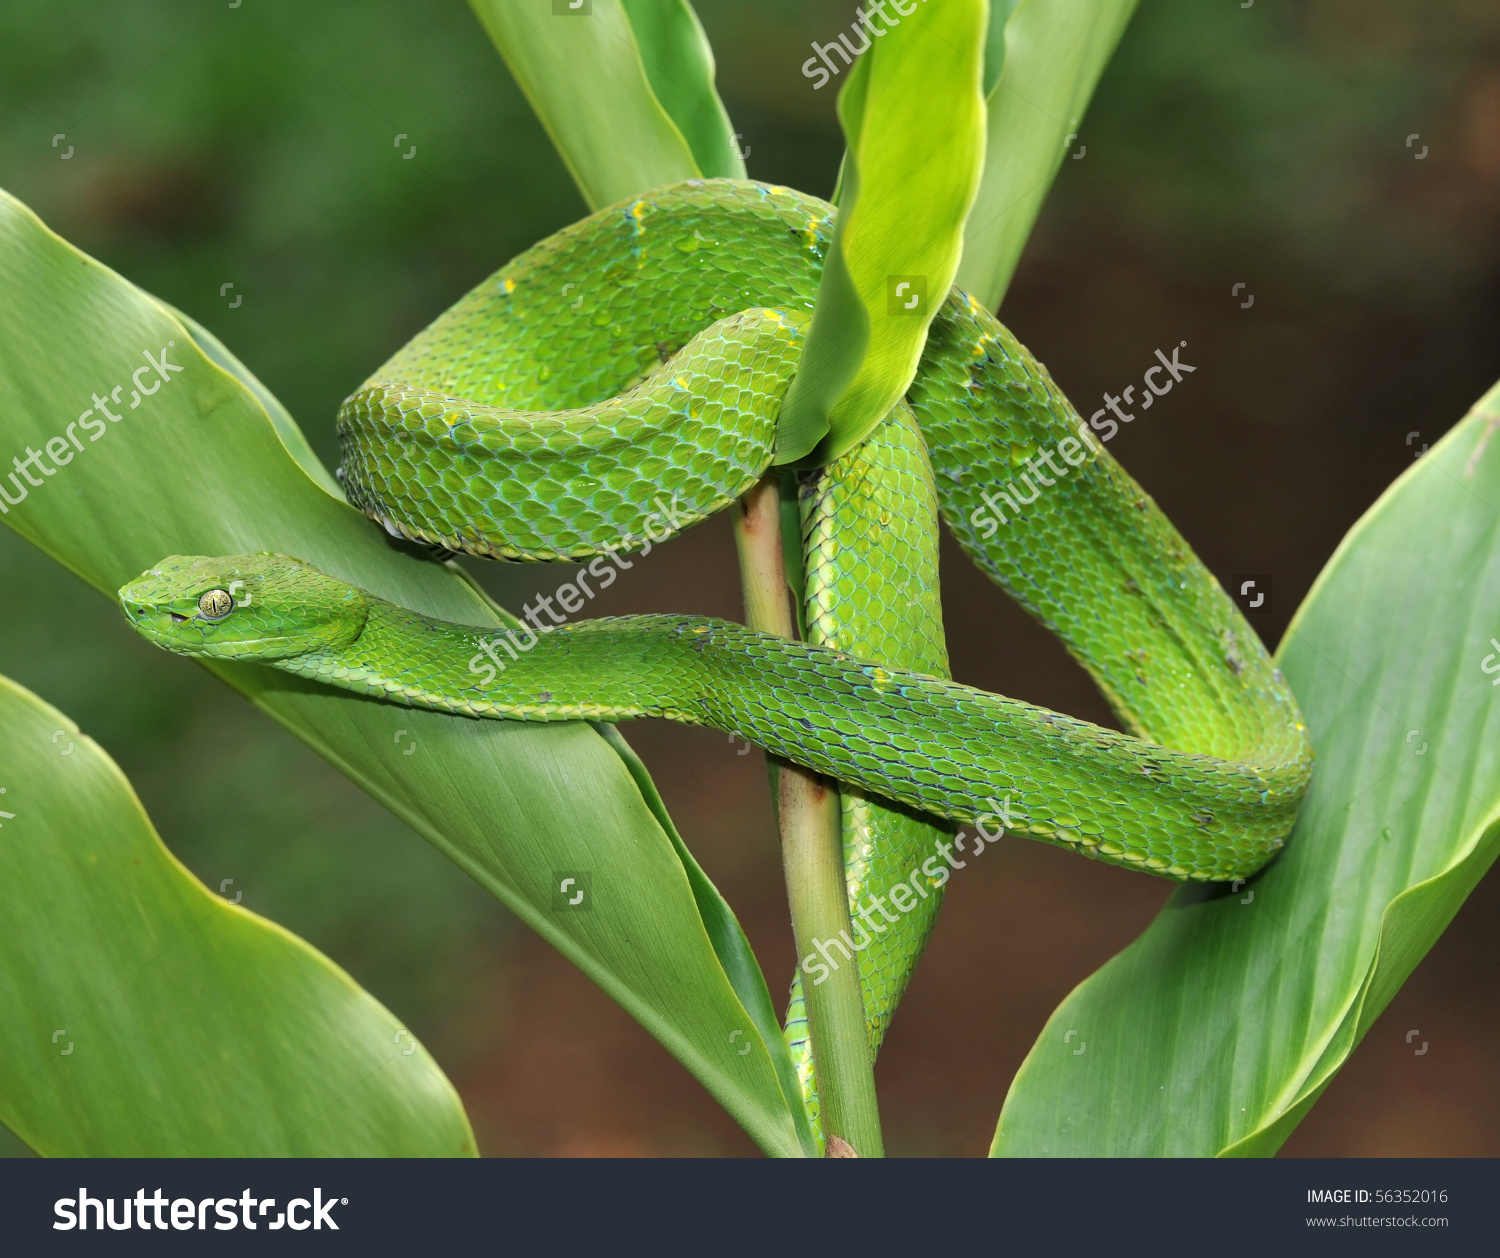 Green Pit Viper clipart #9, Download drawings